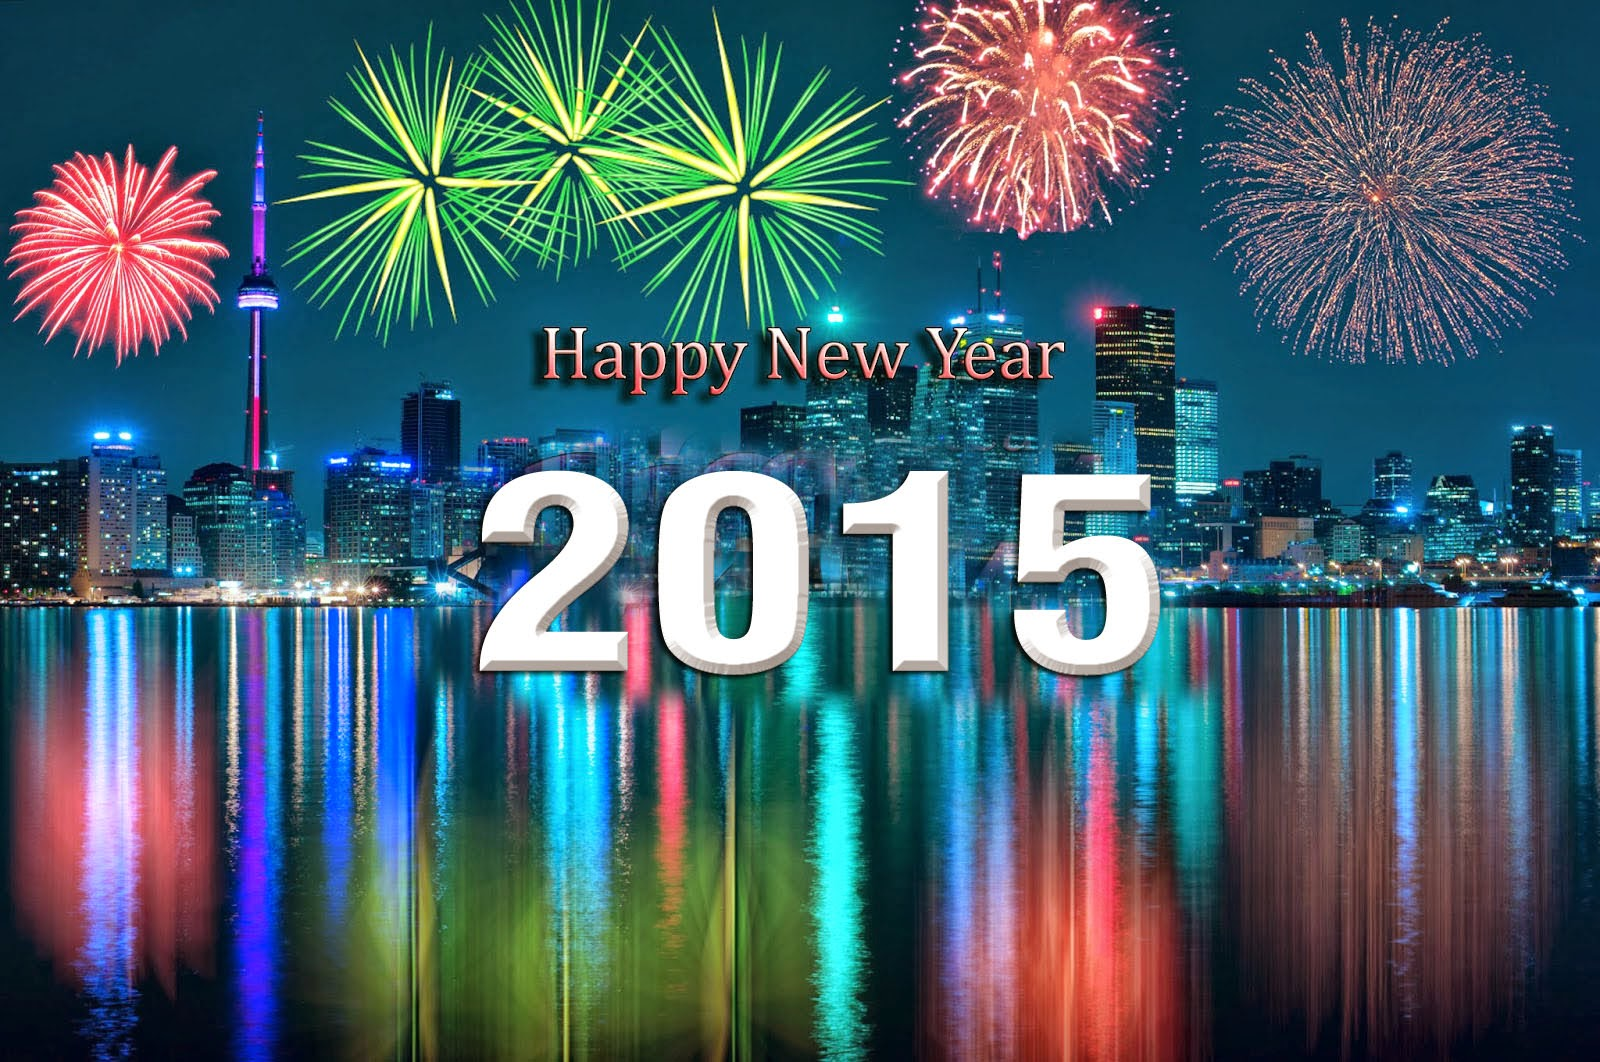 happy new year images, happy new year pictures